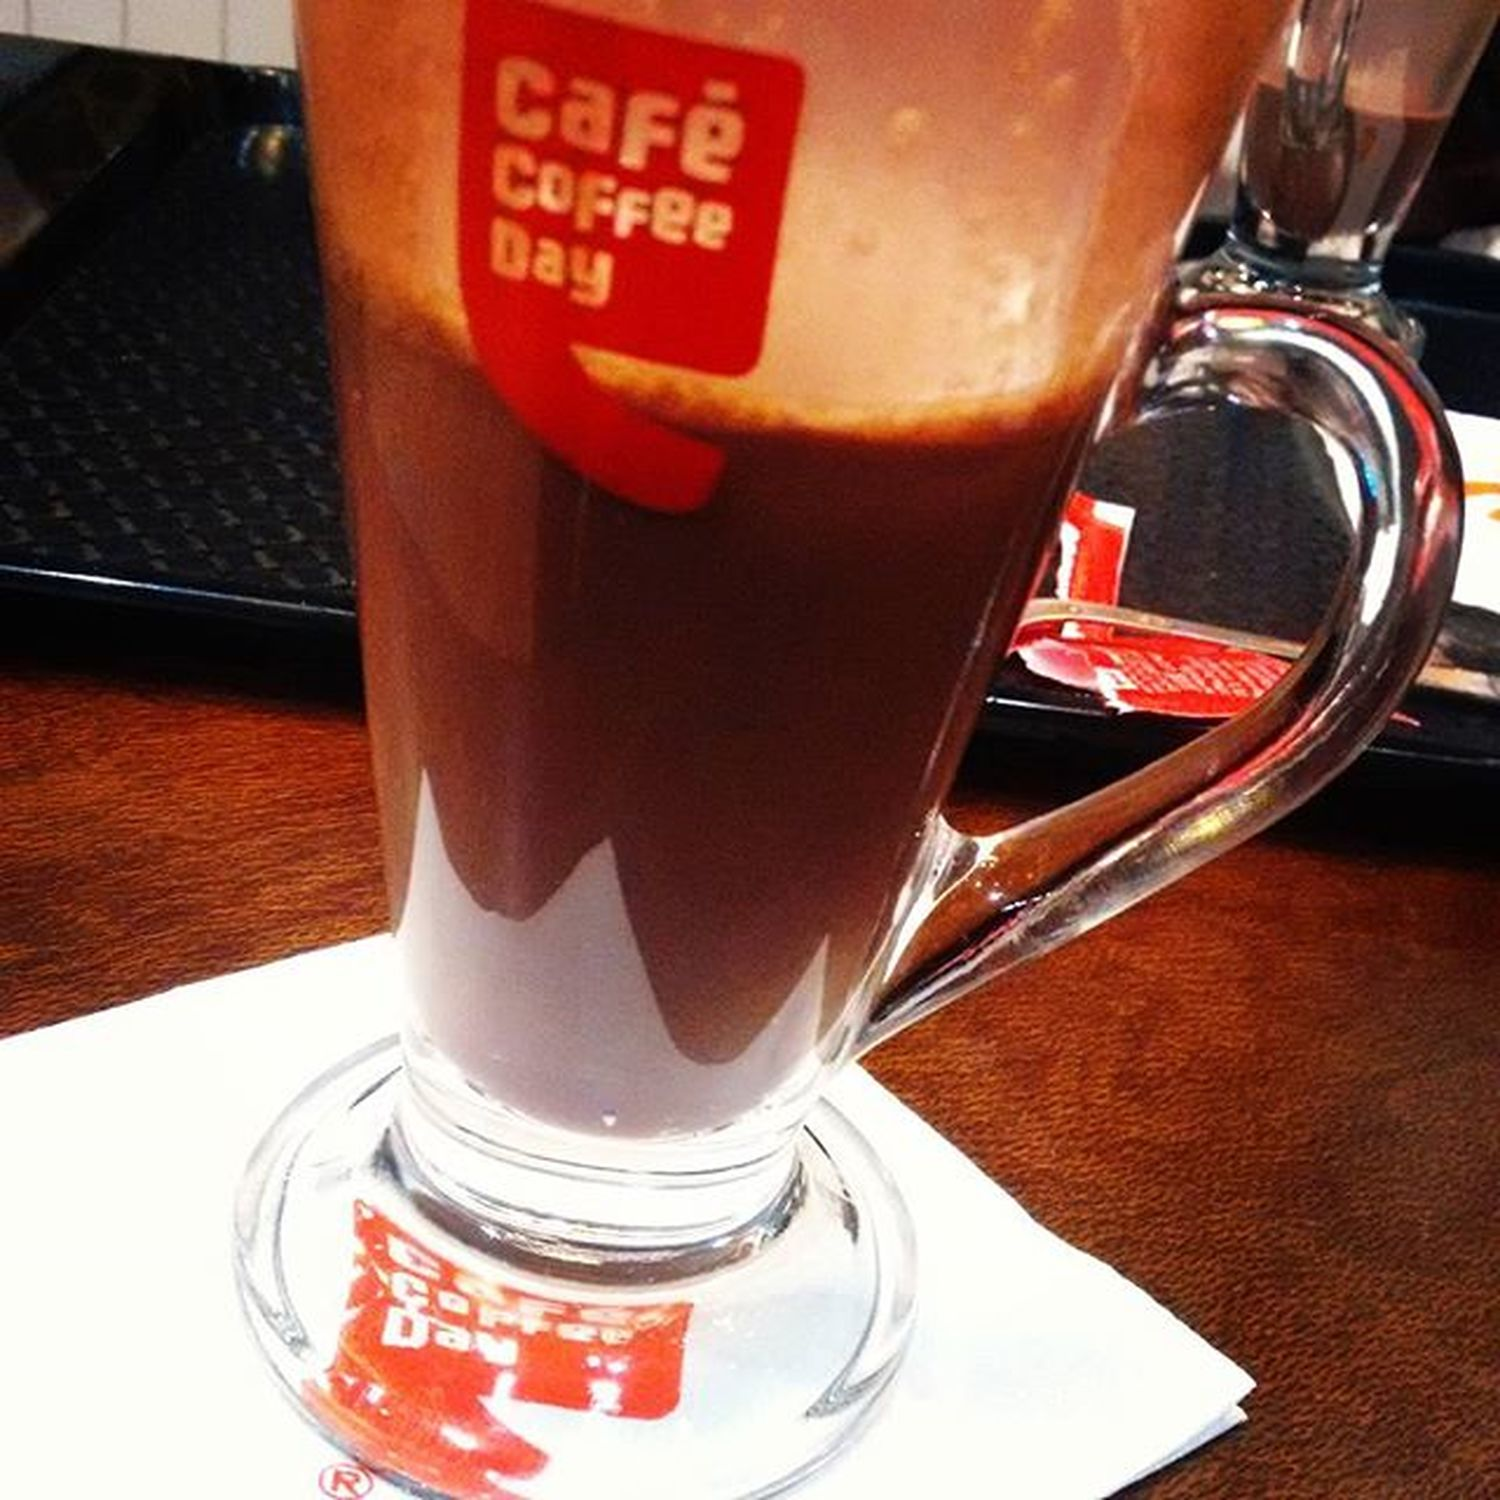 Cafecoffeeday Chocolate Coffee Nagpurinstagrammers😎👌